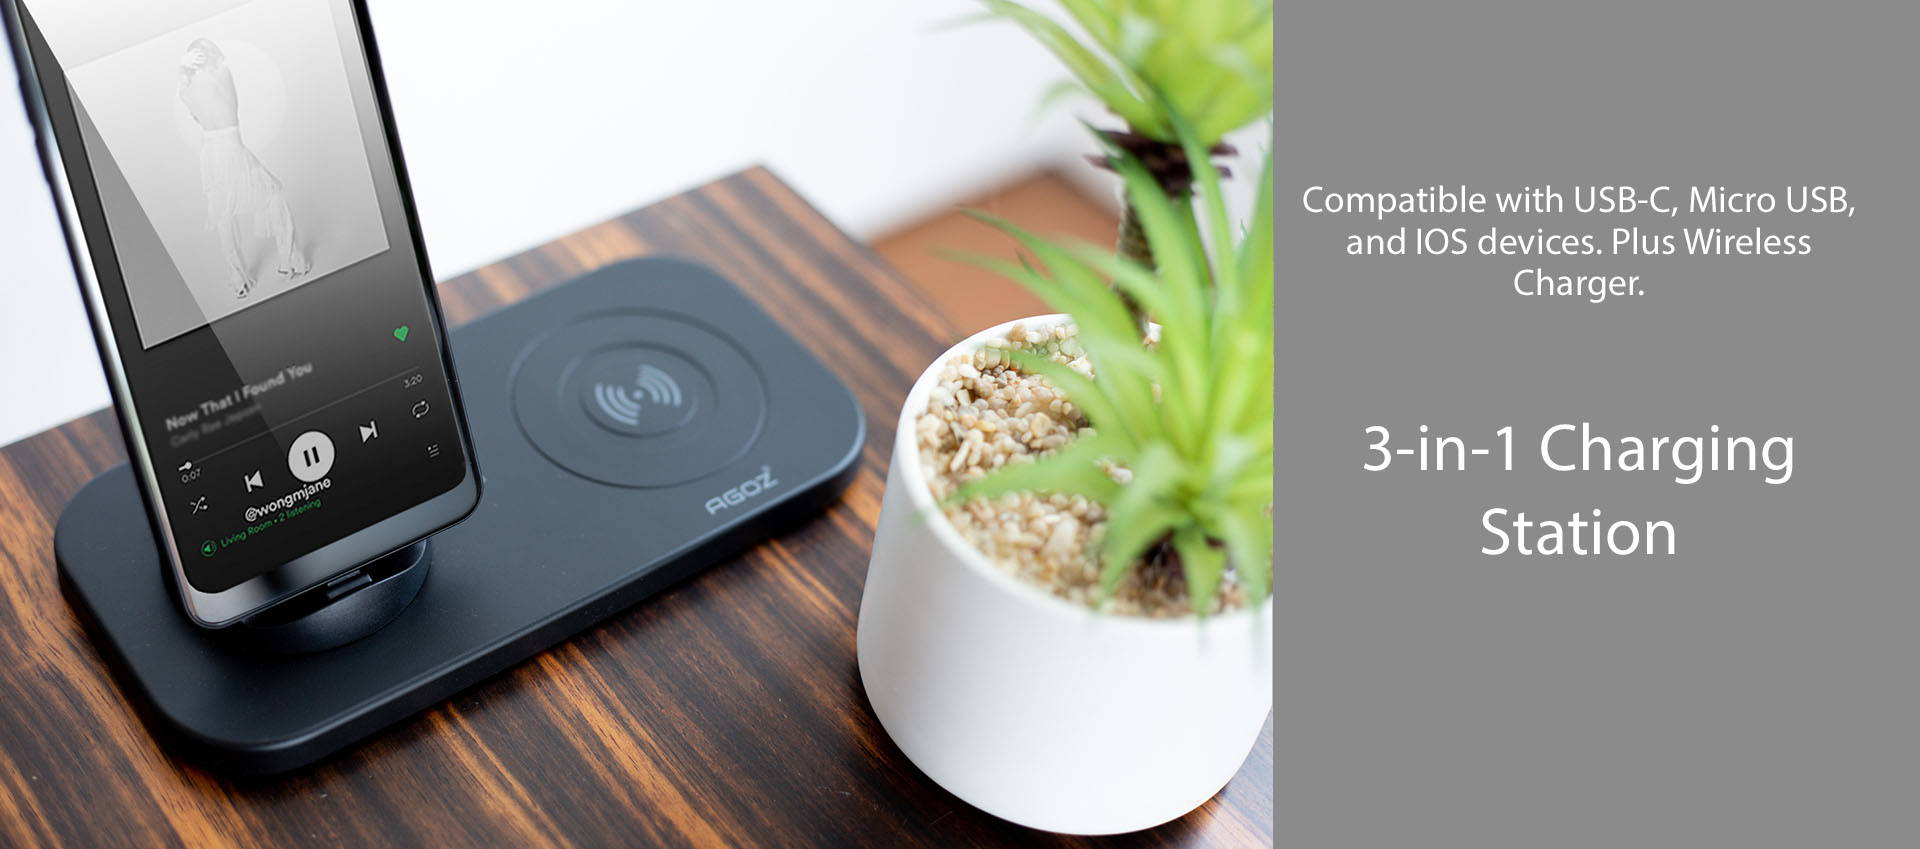 3 in 1 charging station